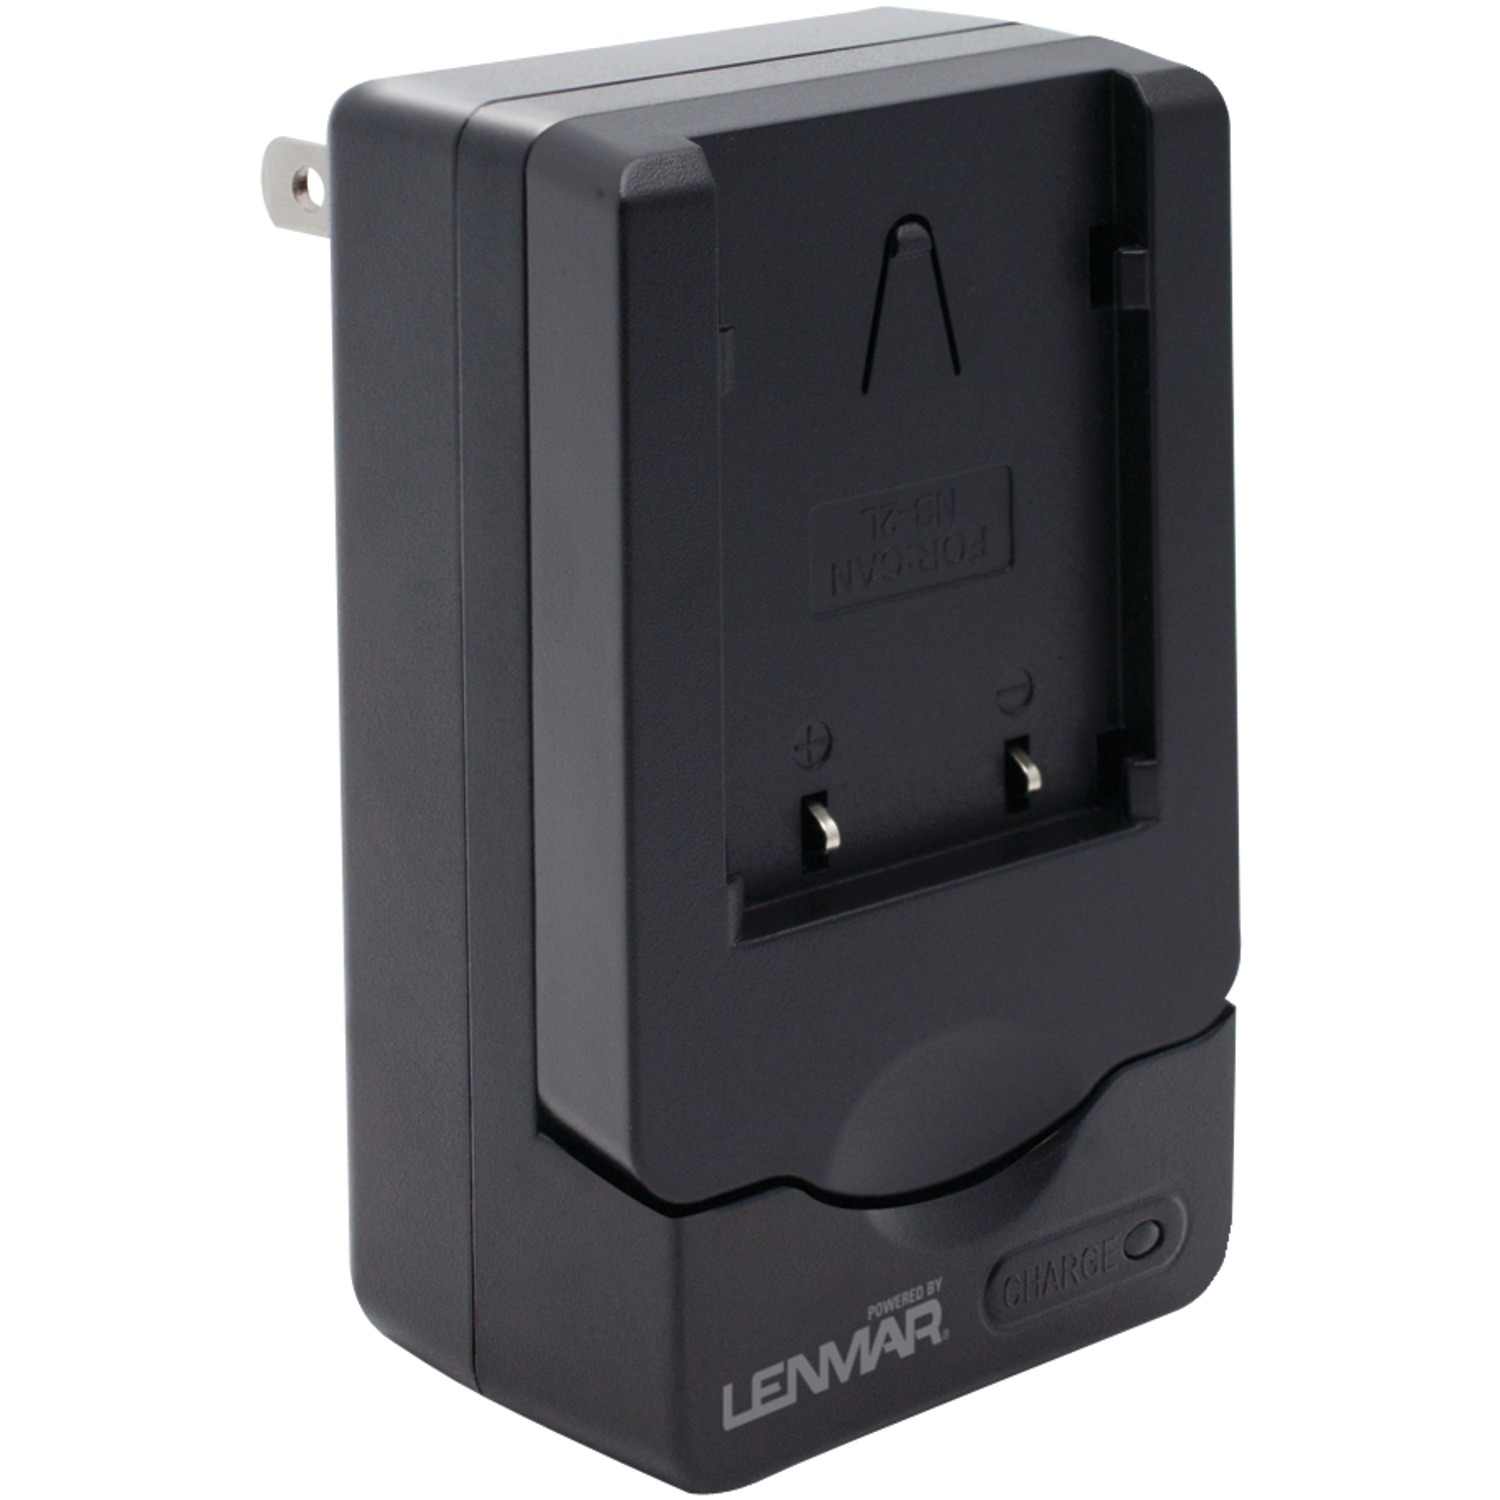 Lenmar Cwnb2l Camera Battery Charger For Canon Nb 2l Nb